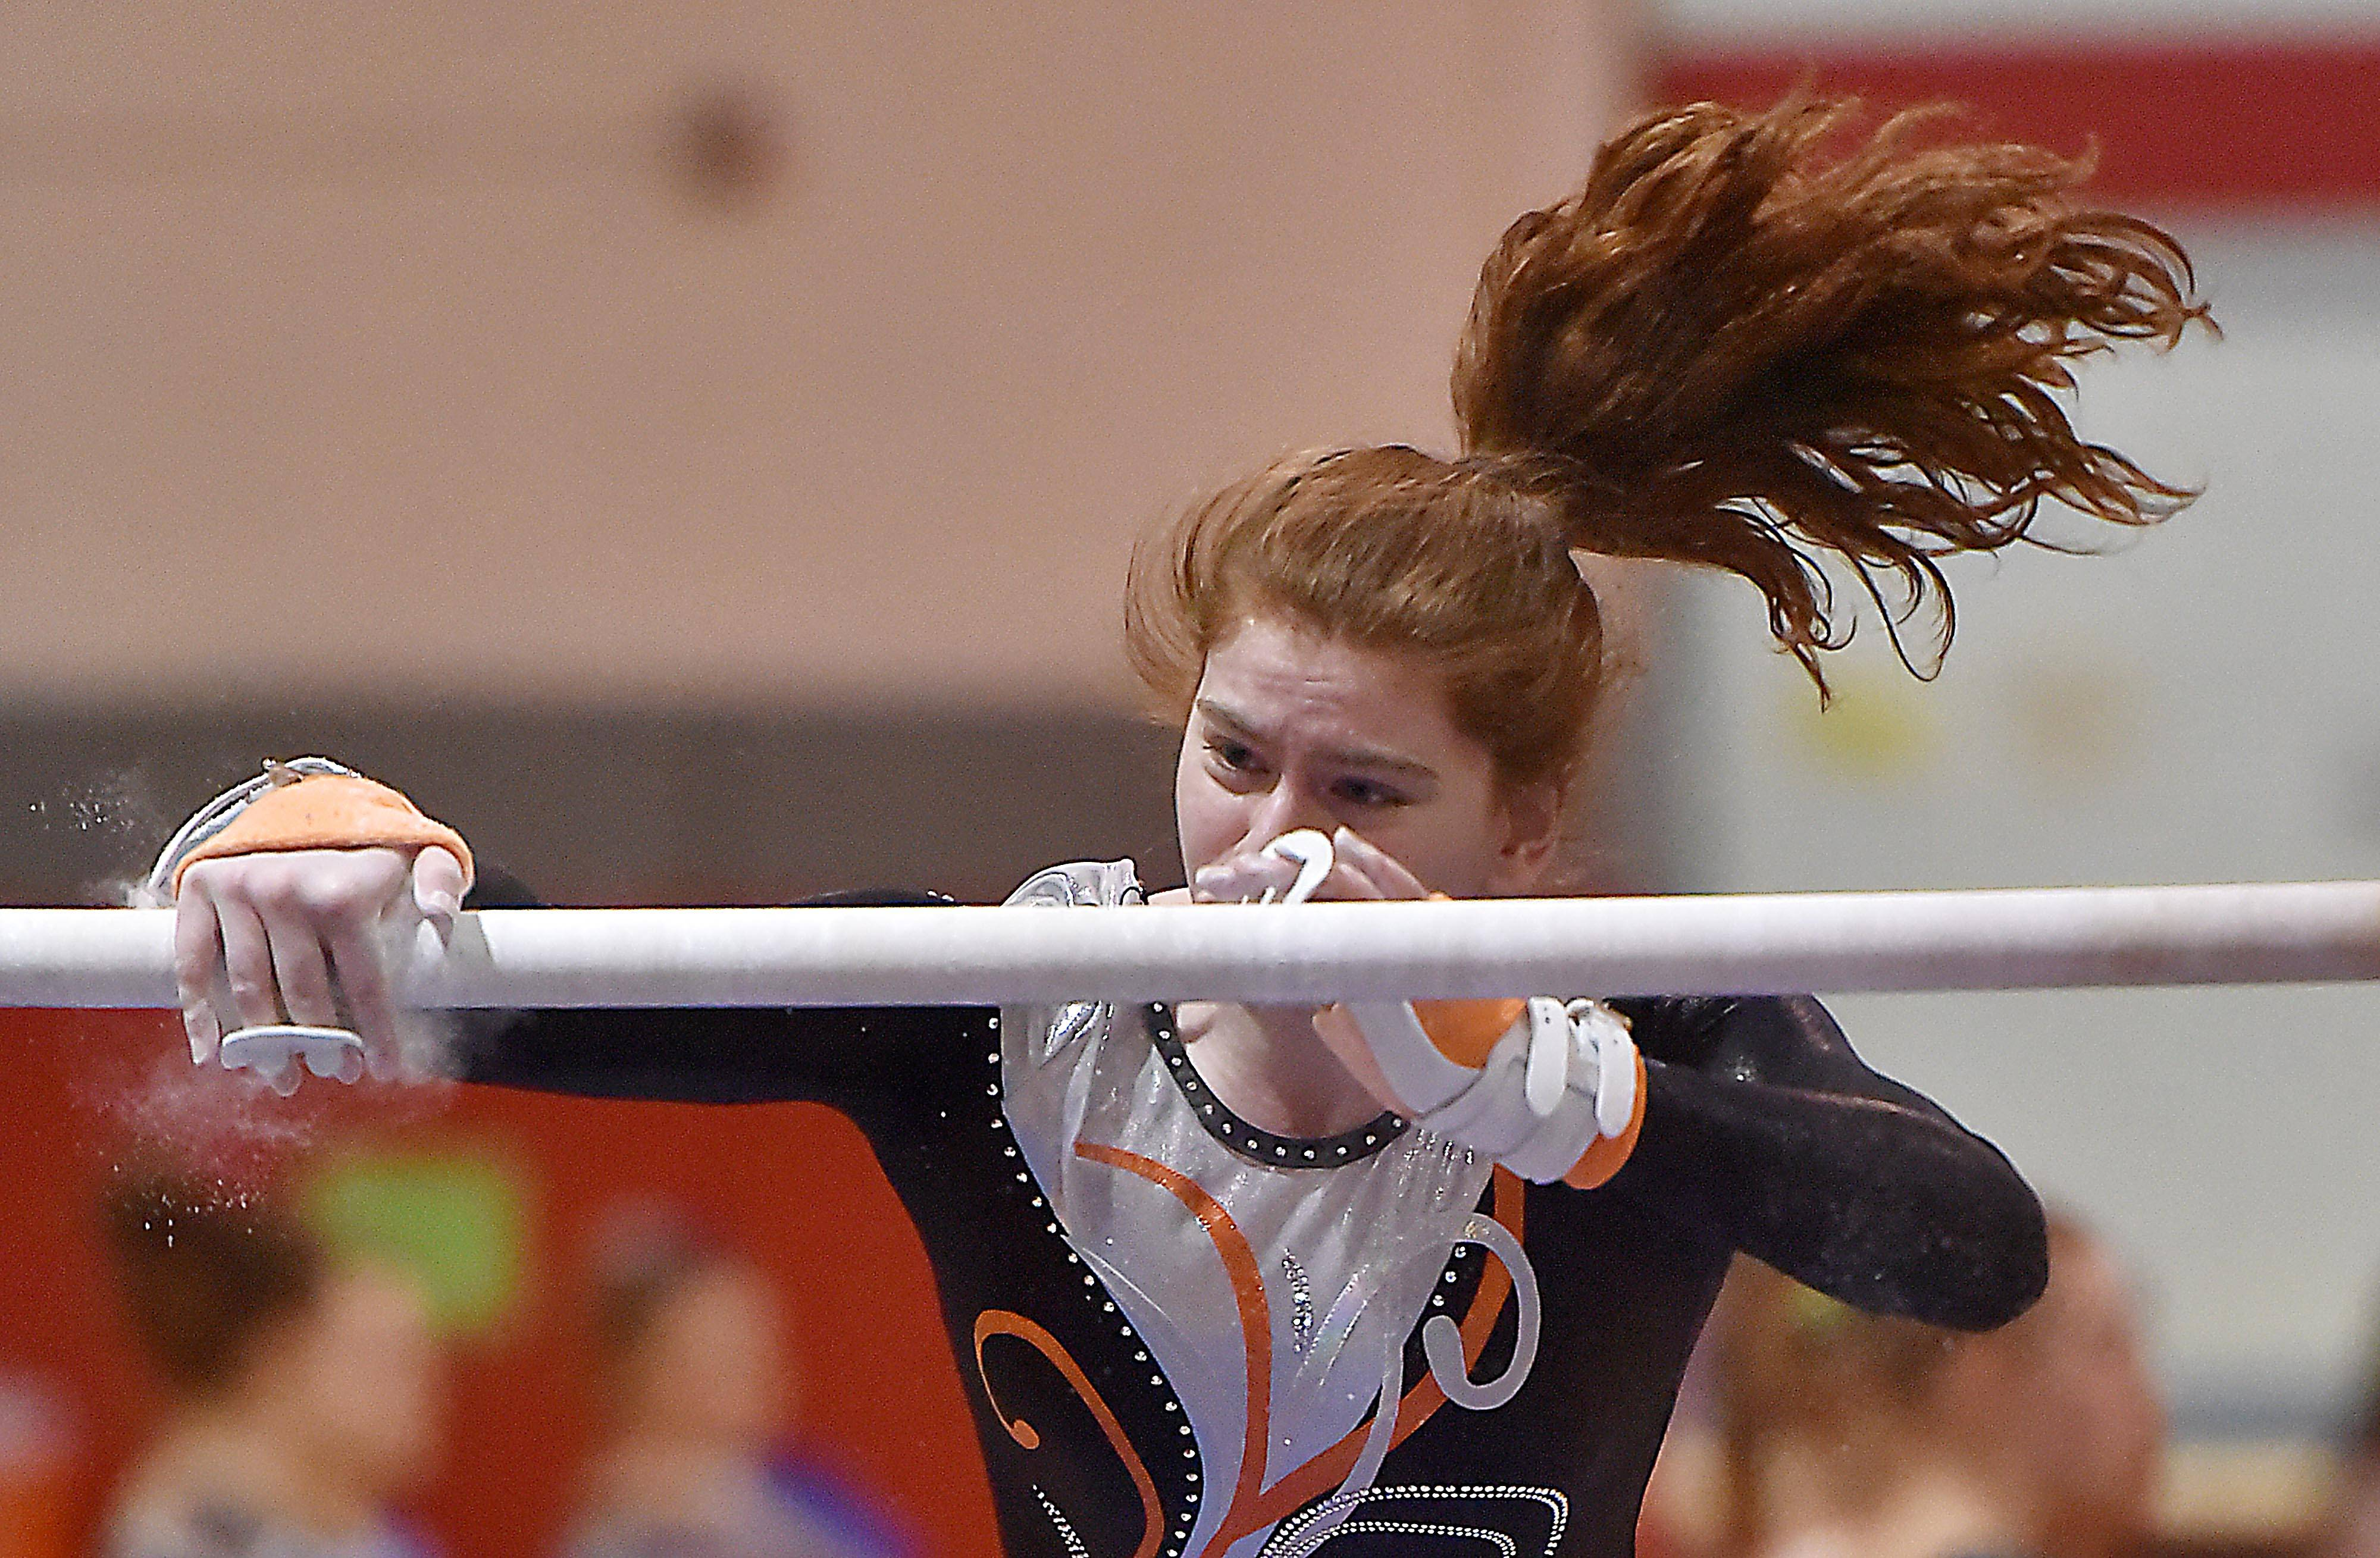 Libertyville's Constance Zanze on the Uneven Bars at the Lake County girls gymnastics meet Saturday at Mundelein High School.